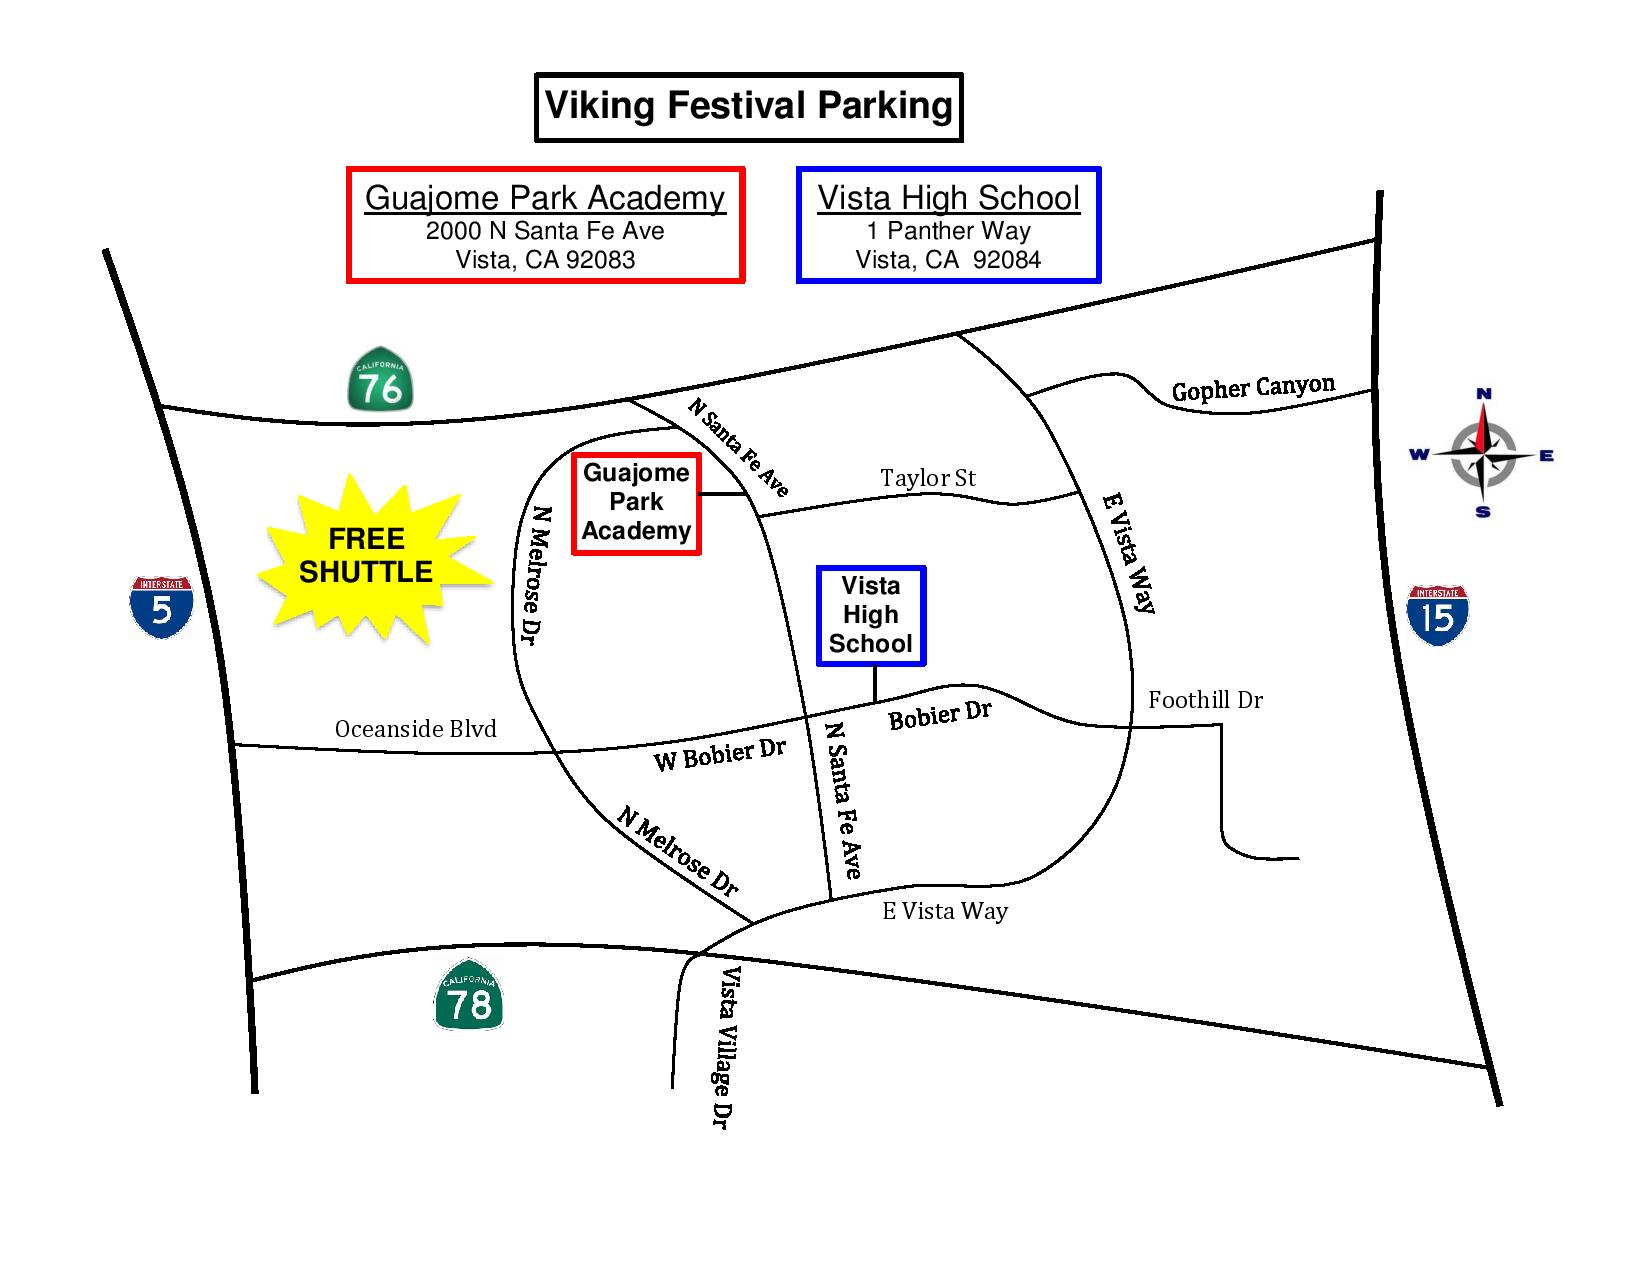 VF Map_parking_2019-page-001.jpg